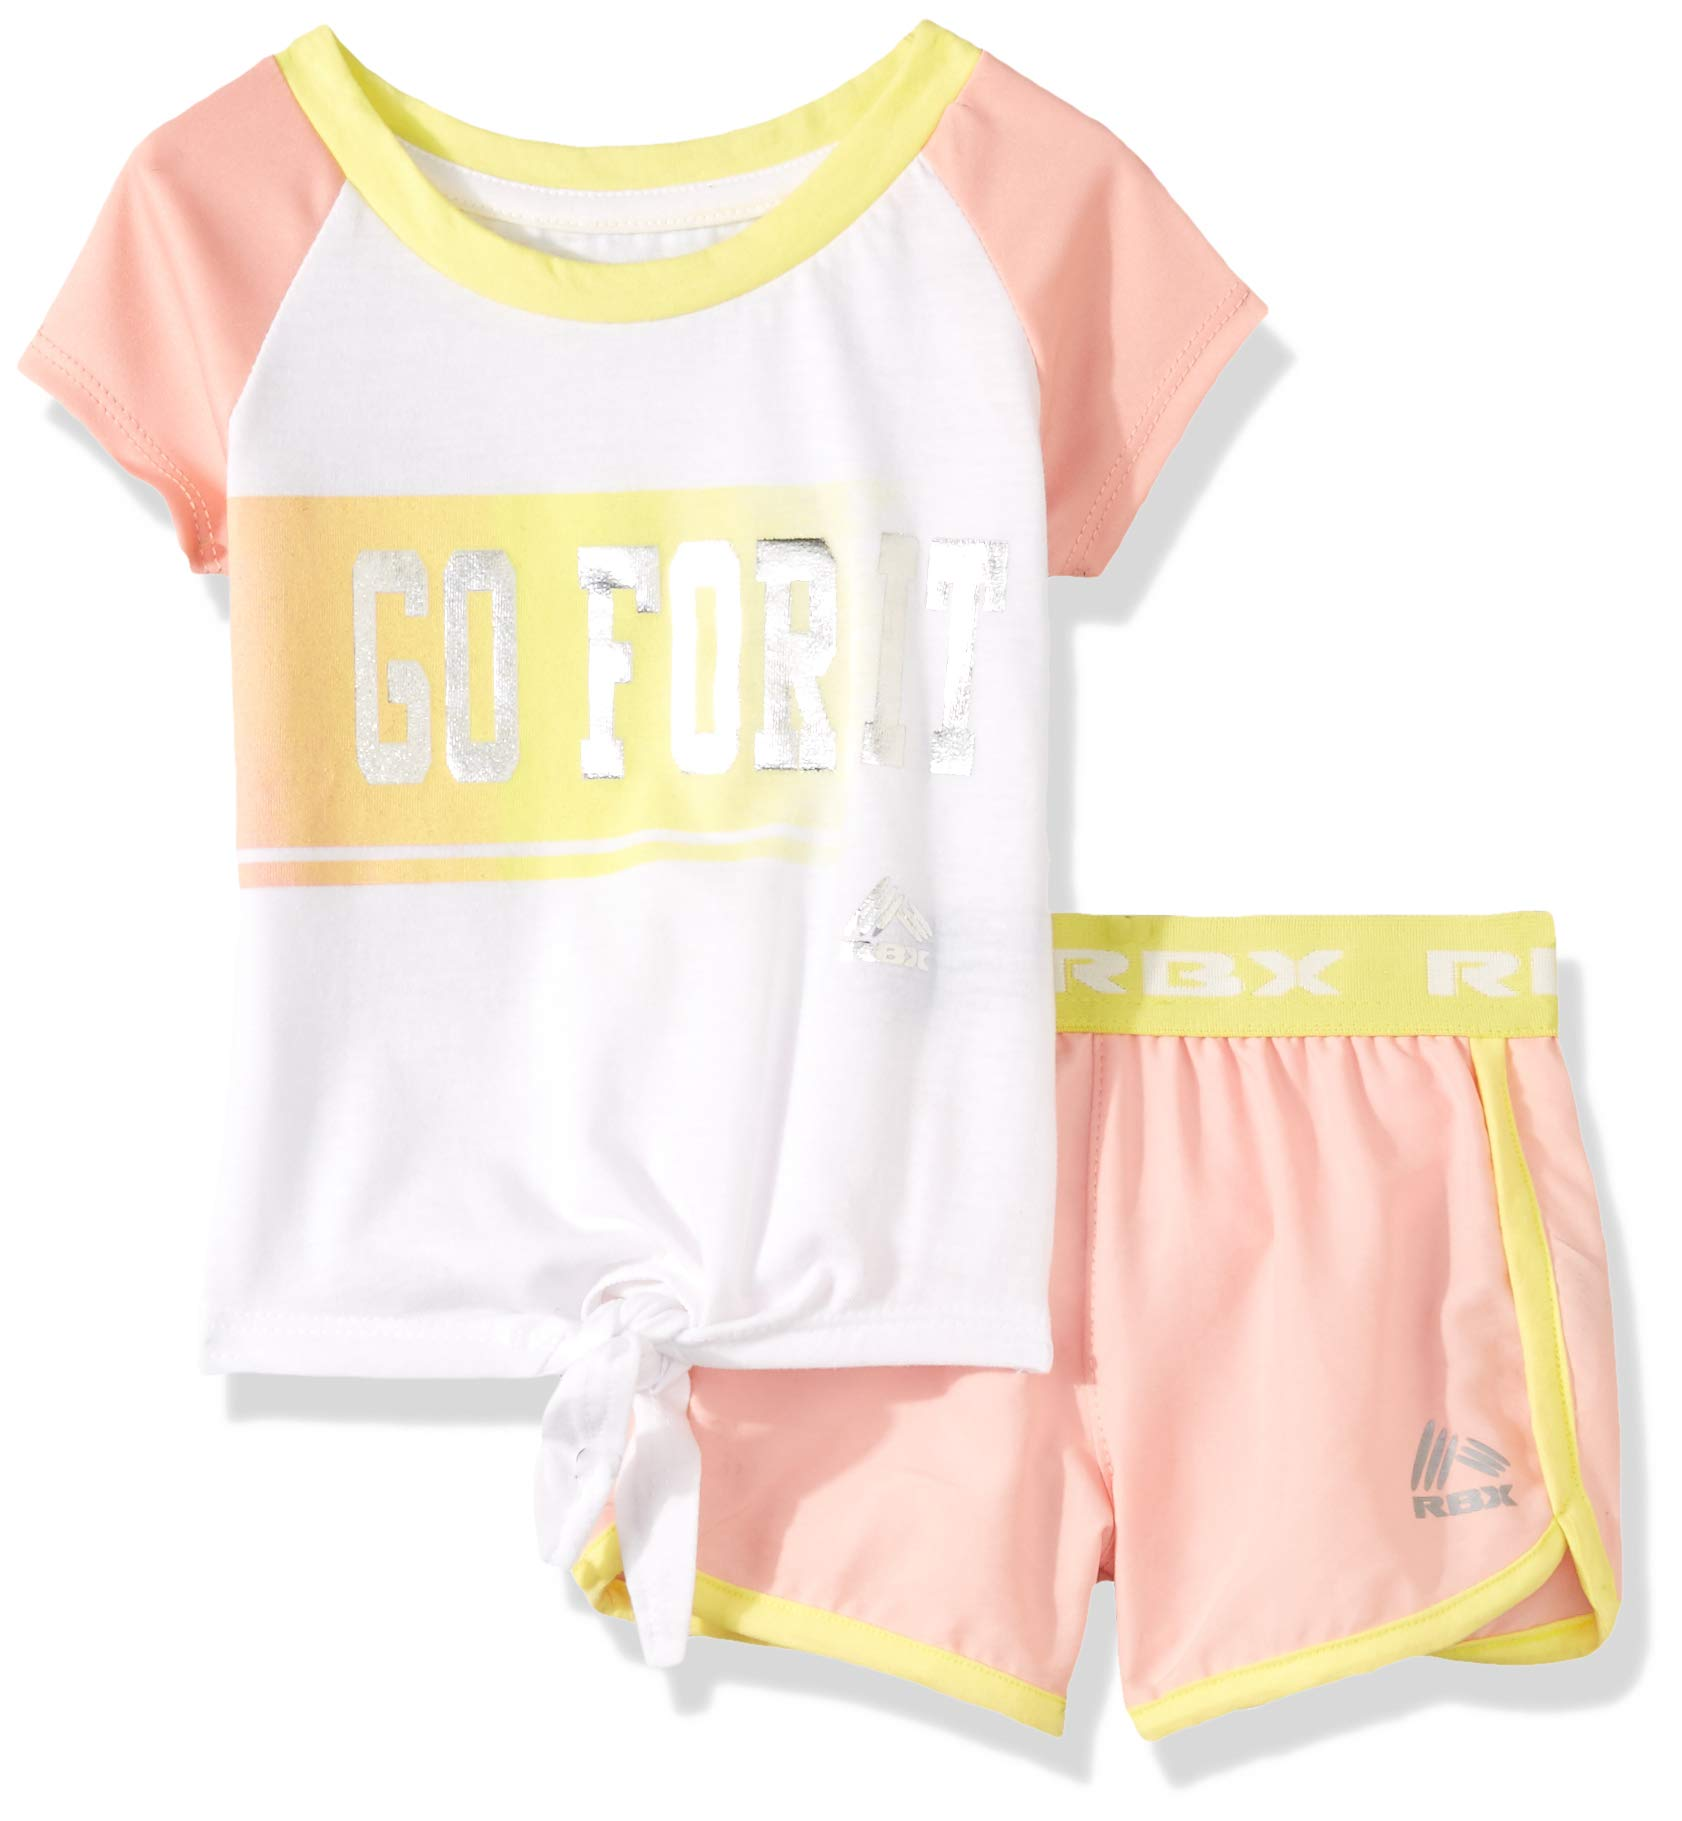 RBX Girls' Big' Active Top and Short Set, Go for It Pink, 7/8 by RBX (Image #1)